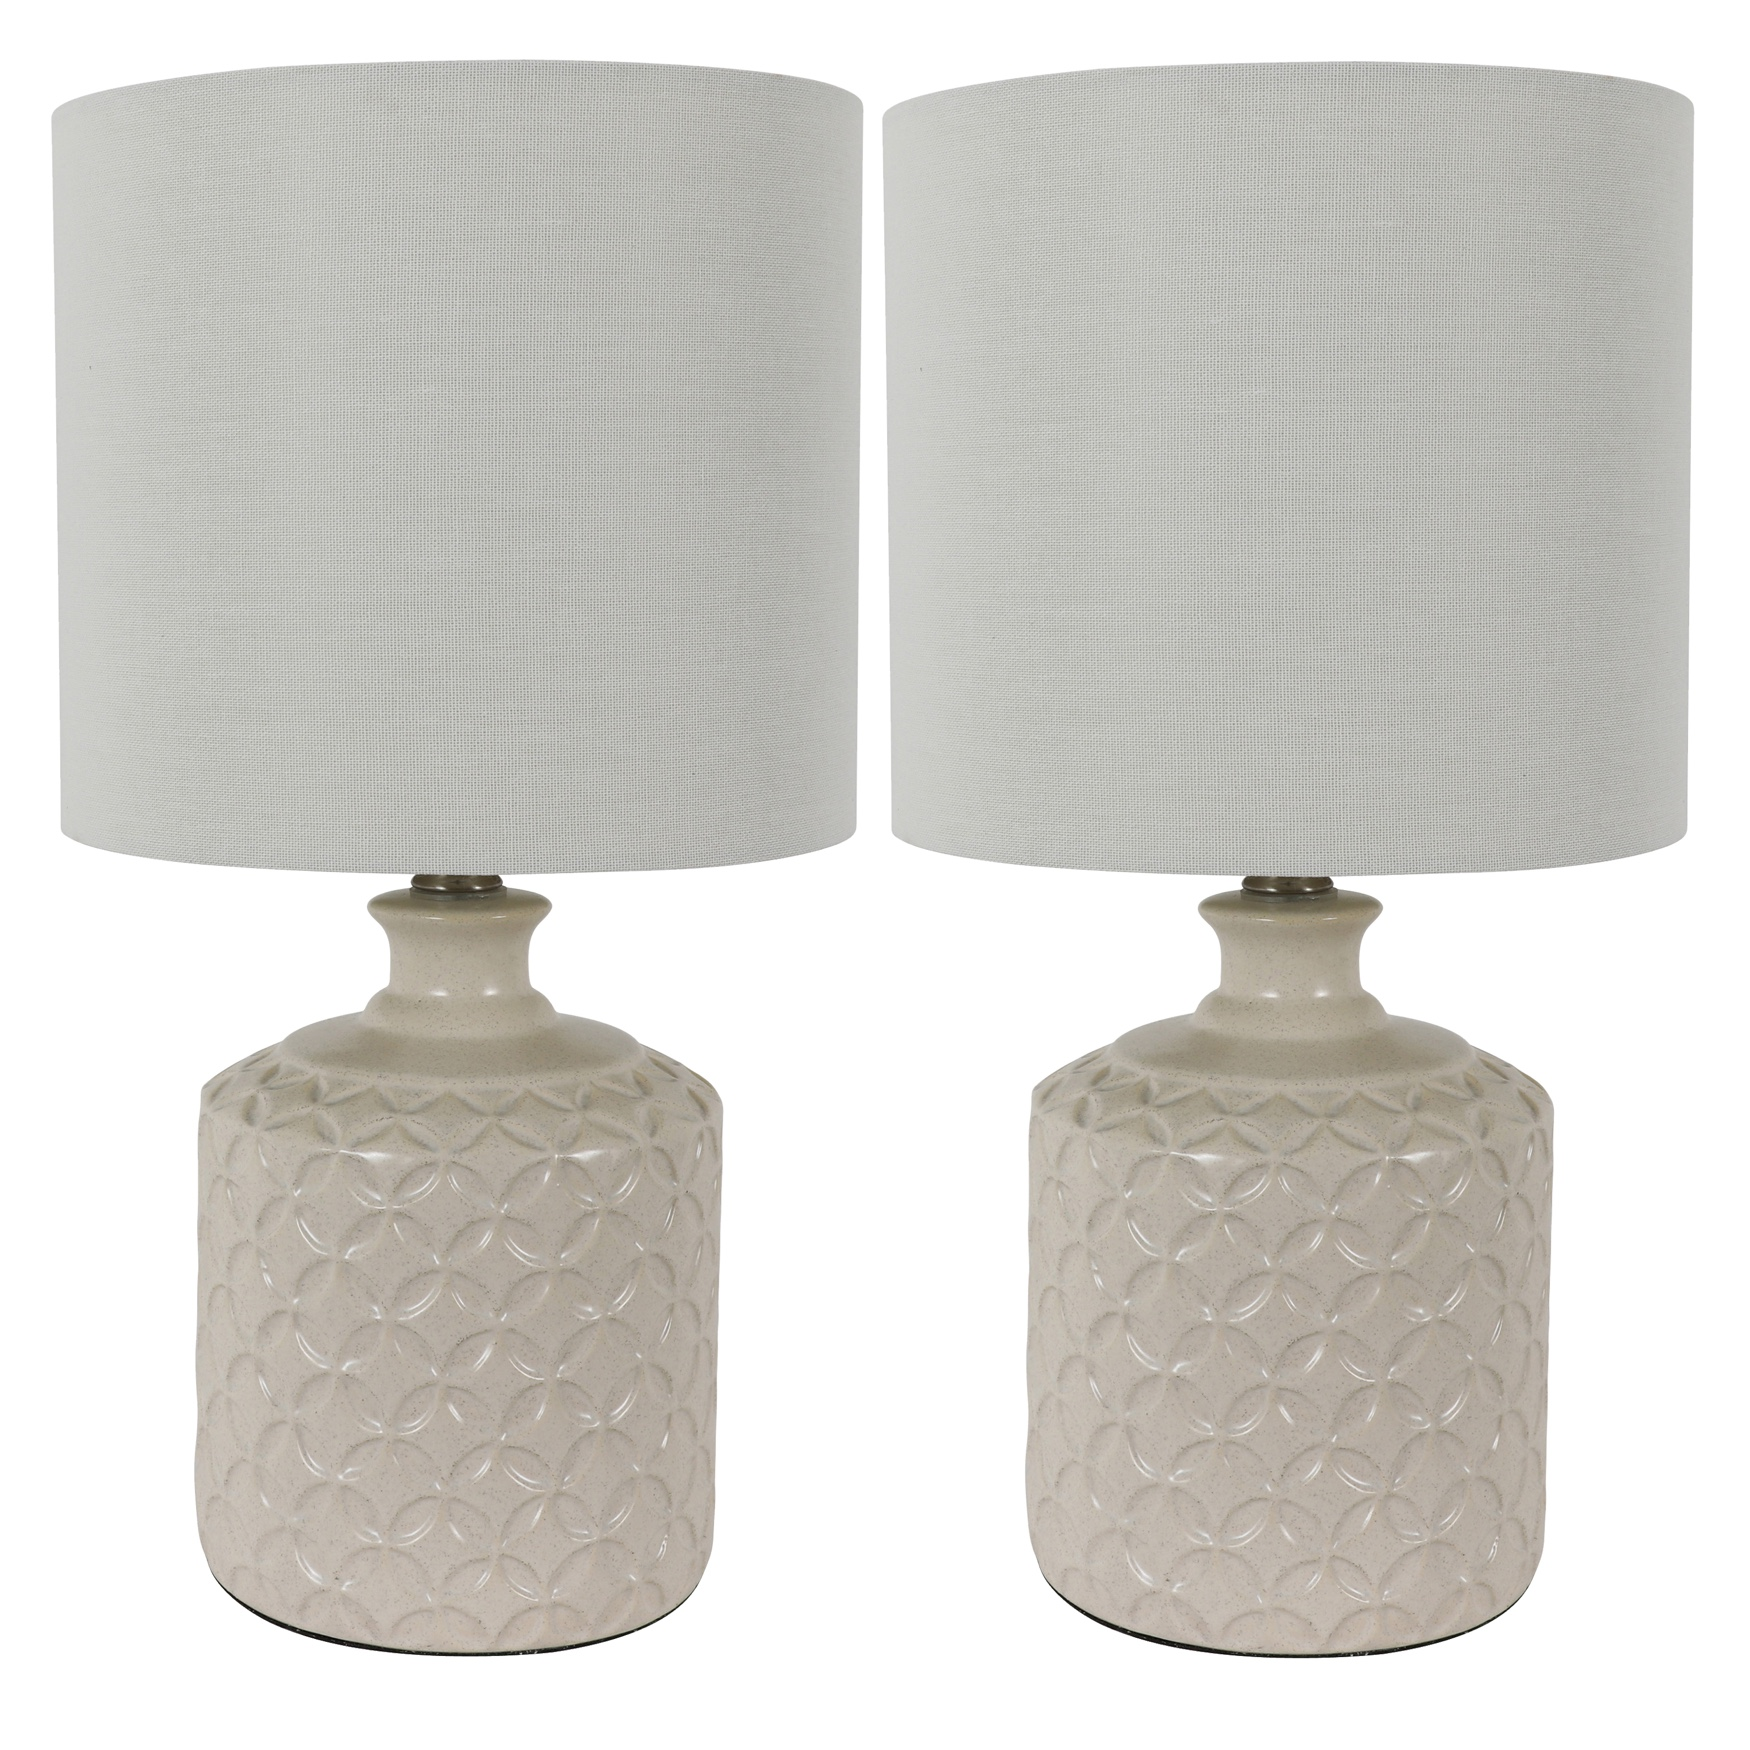 Ivory Ceramic 2-Pack LED Table Lamps, IVORY